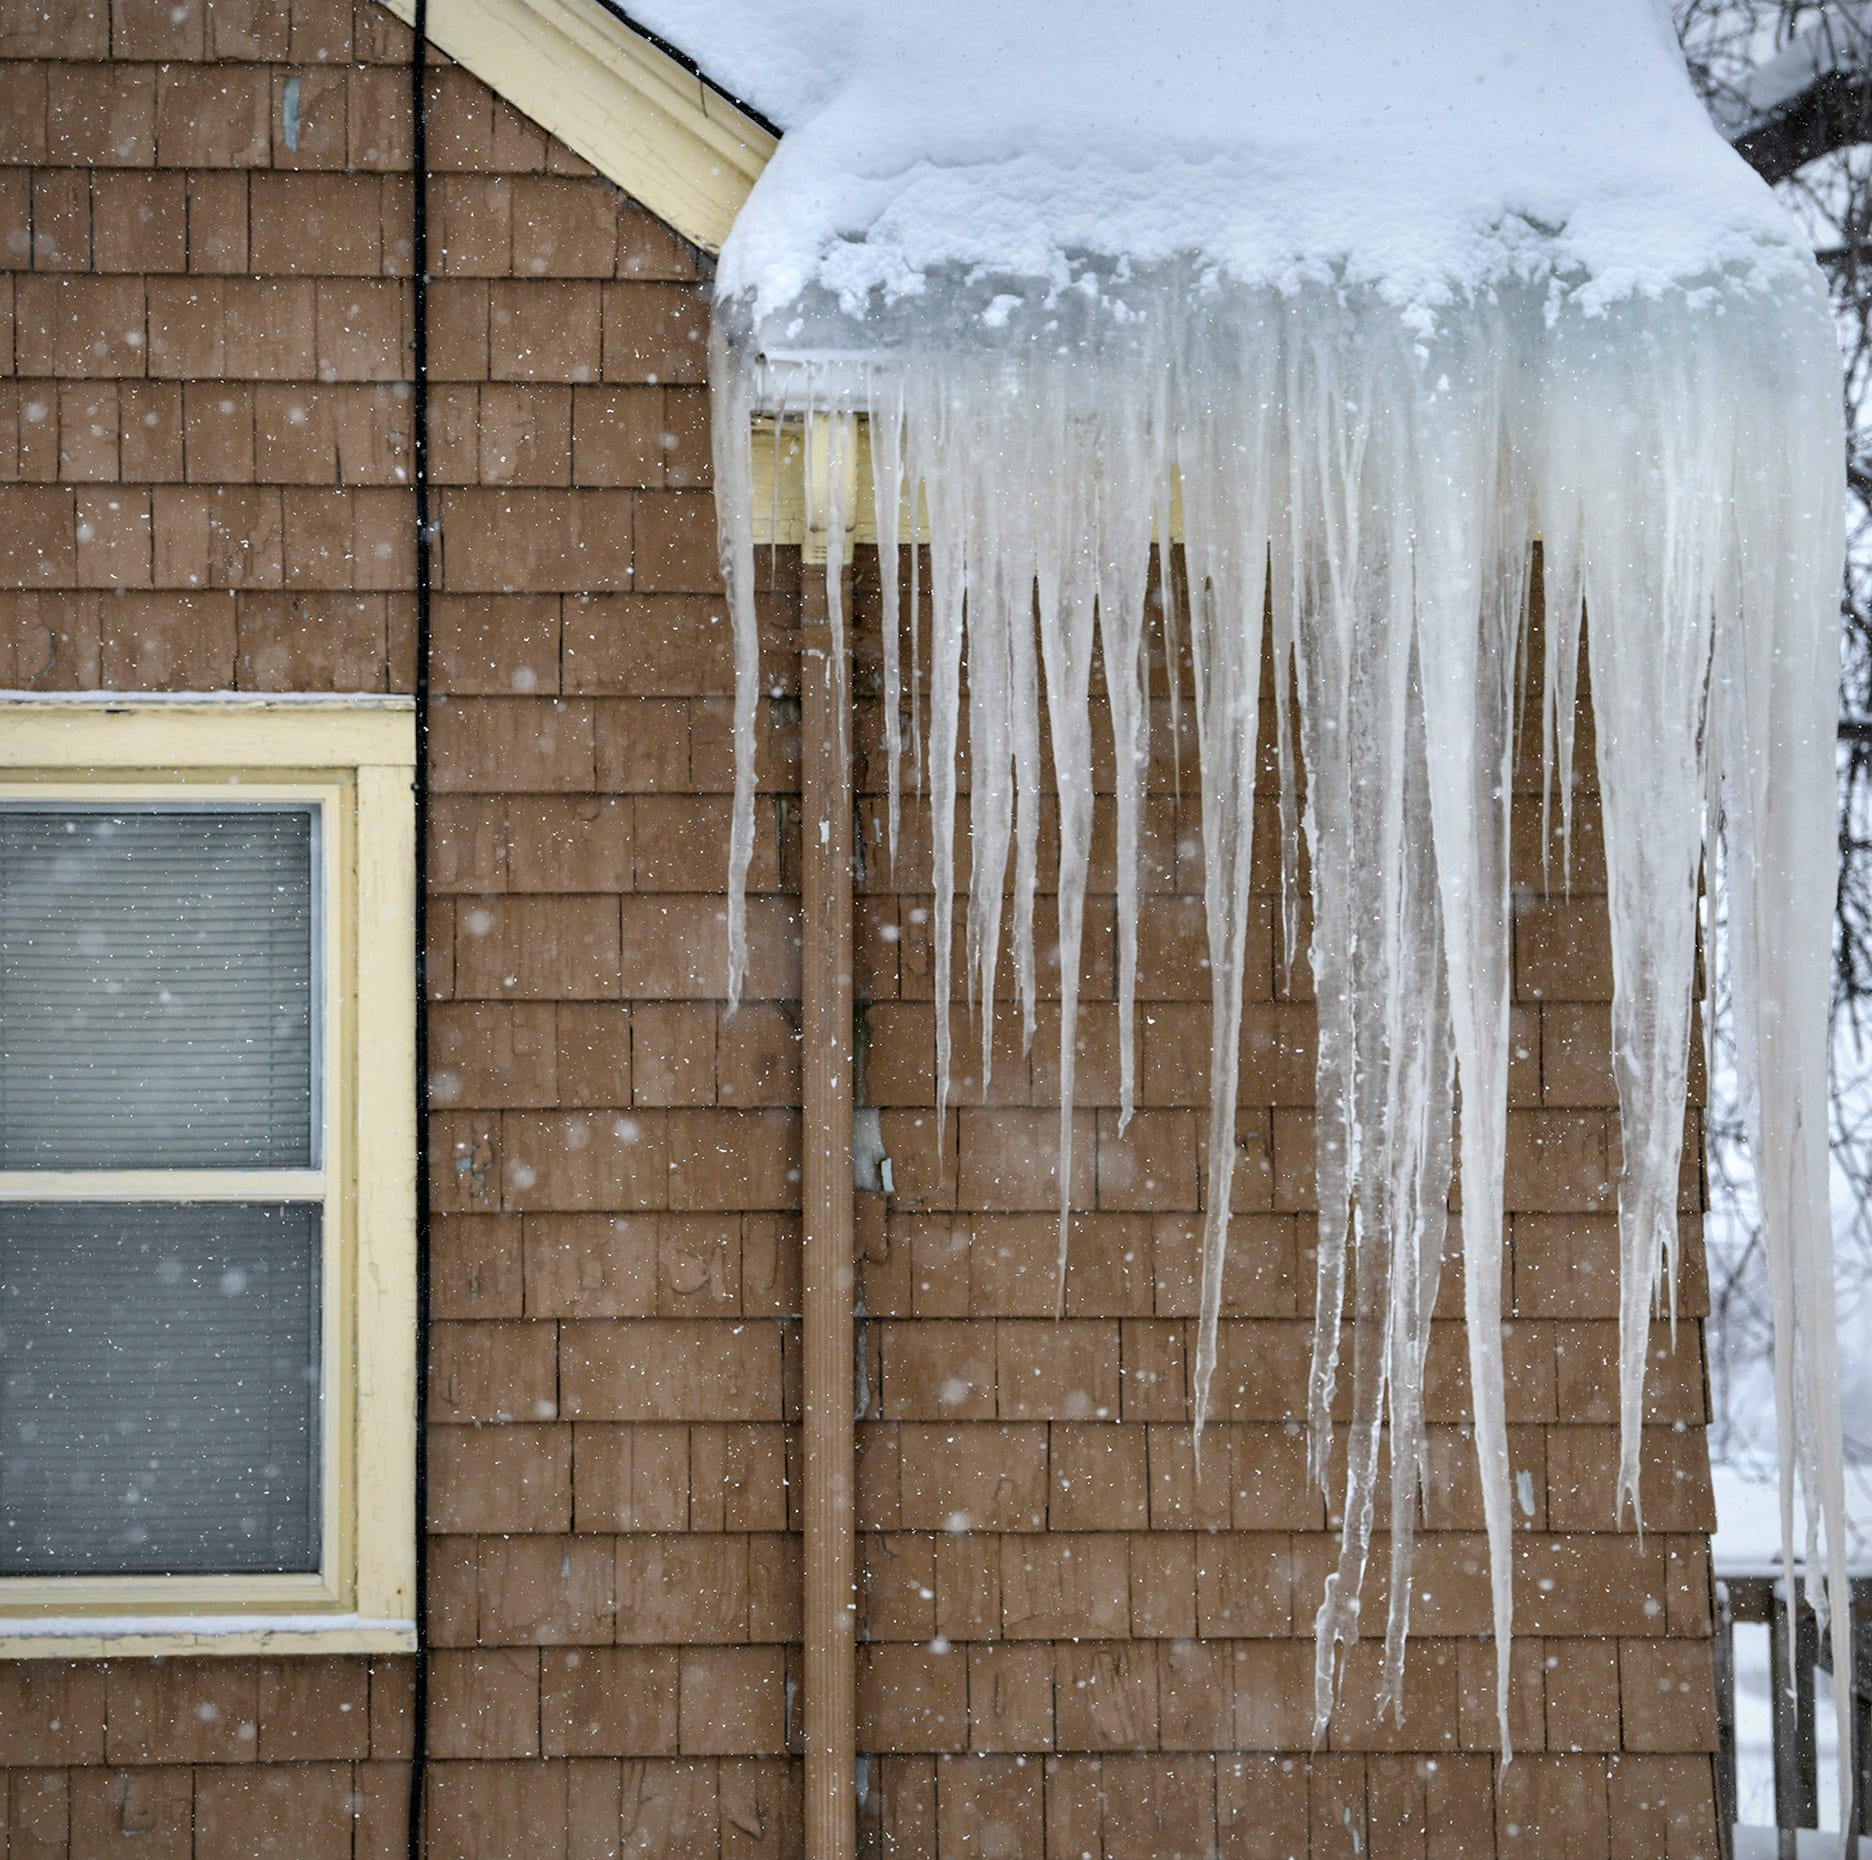 Ice dams: What they are, how to prevent them, and what it costs to remove them